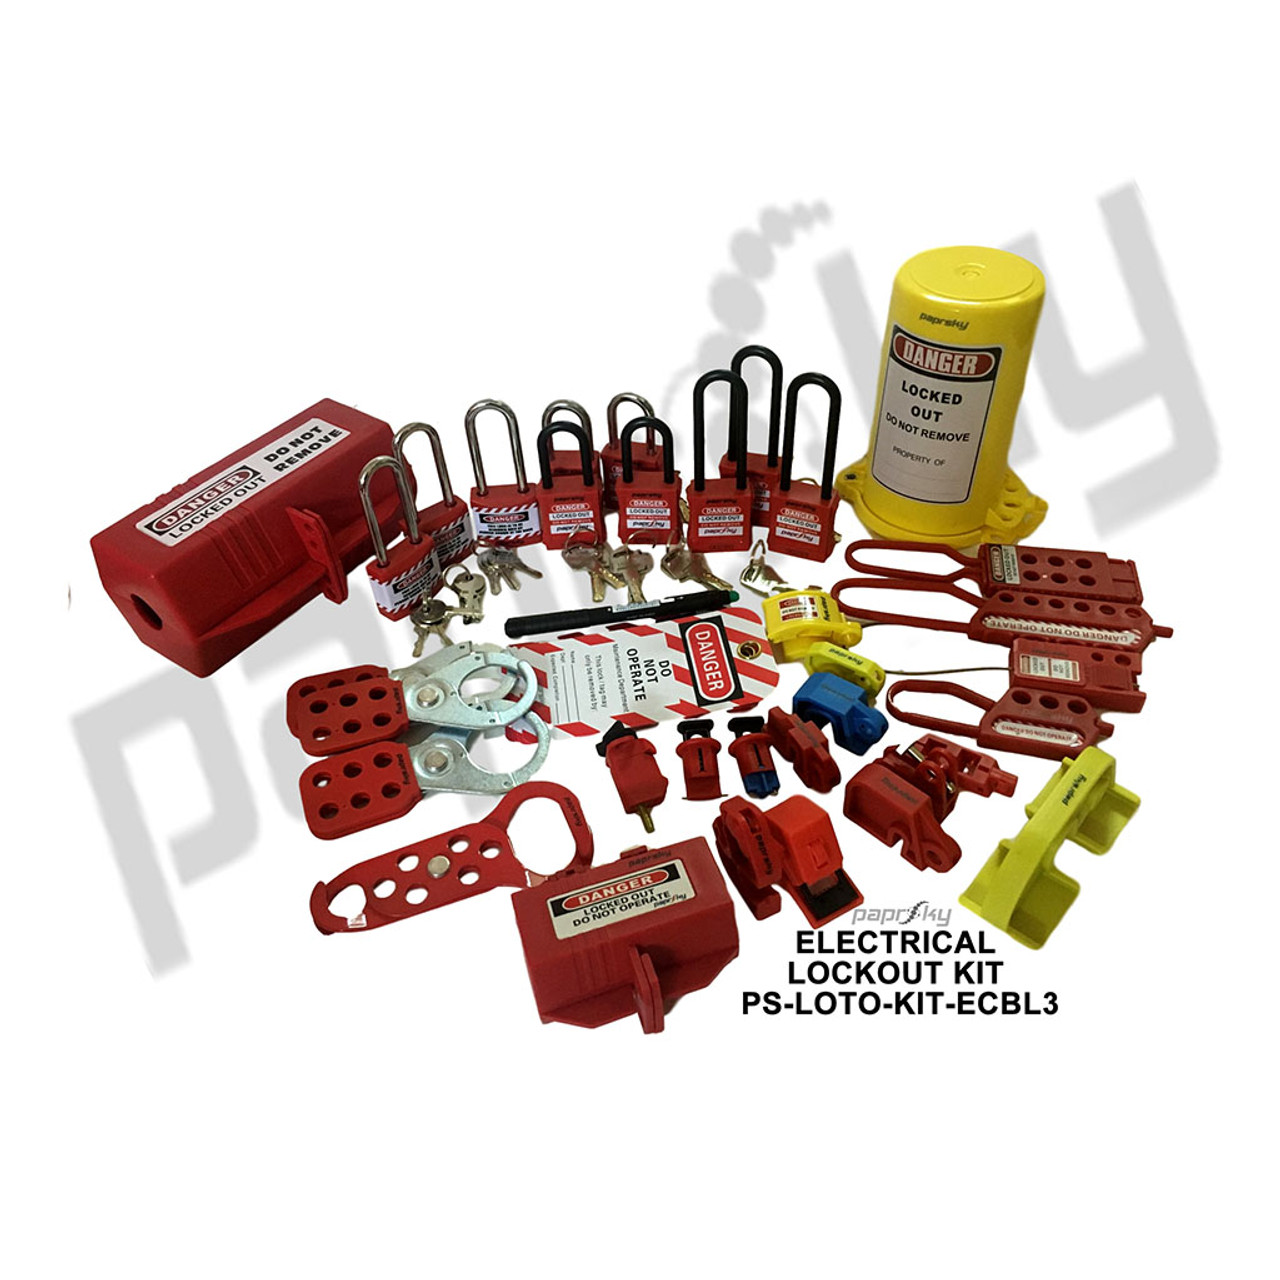 Electrical Plug & Circuit Breaker Lockout Kit PS-LOTO-KIT-ECBL3